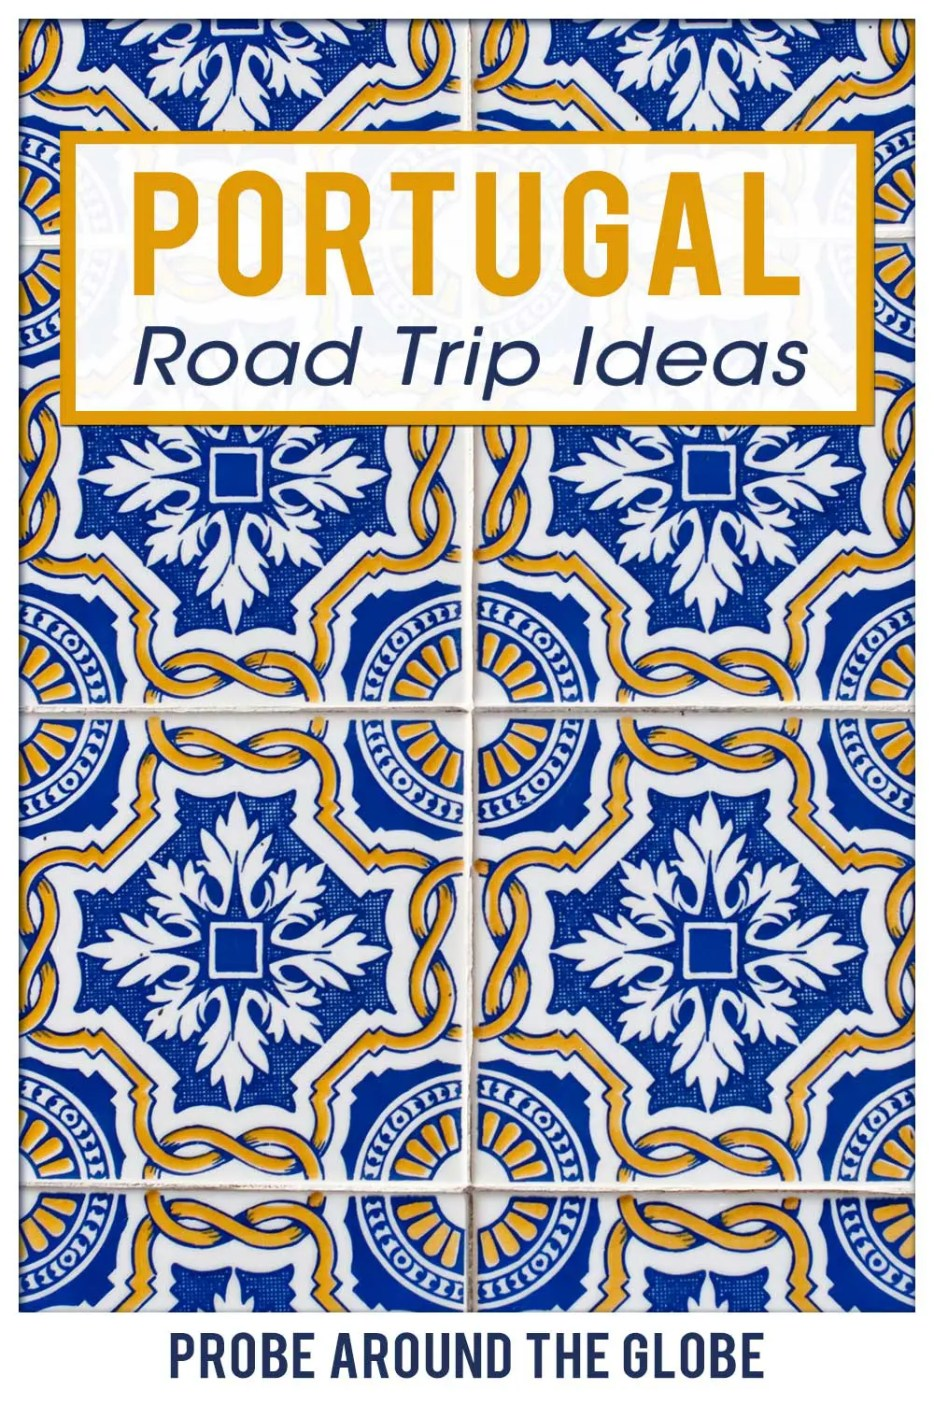 Mosaic tiles with blue and yellow pattern with text overlay saying: Portugal road trip ideas Probe around the Globe